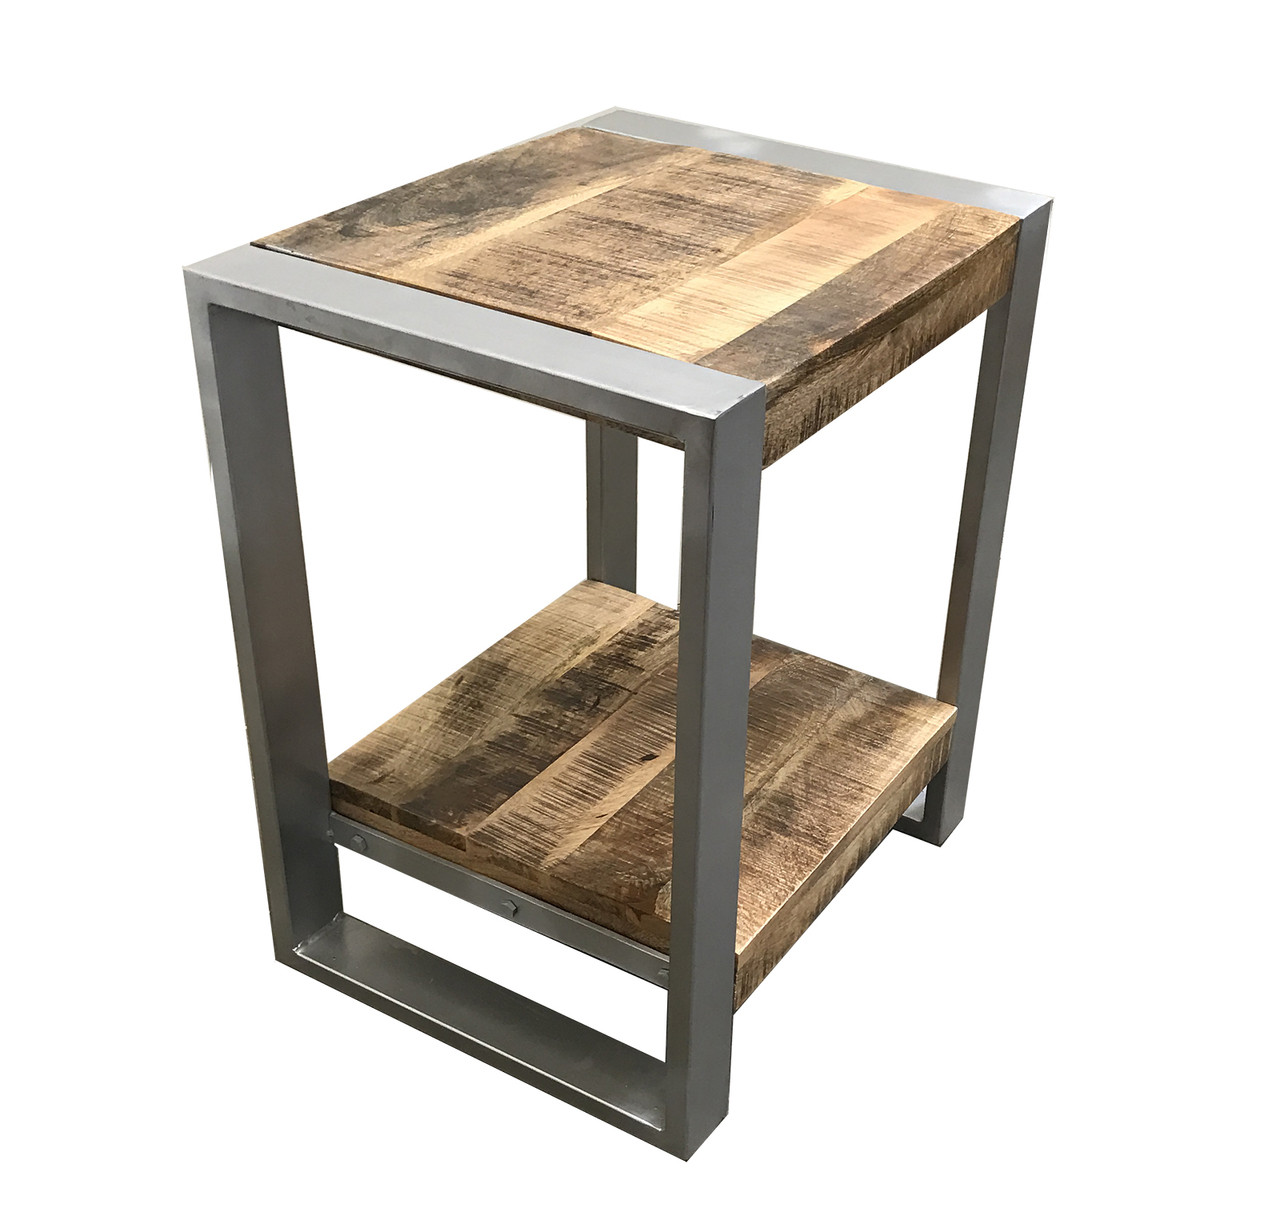 Unique Timbergirl Reclaimed Wood Side Table with Silver legs - Timbergirl FD13